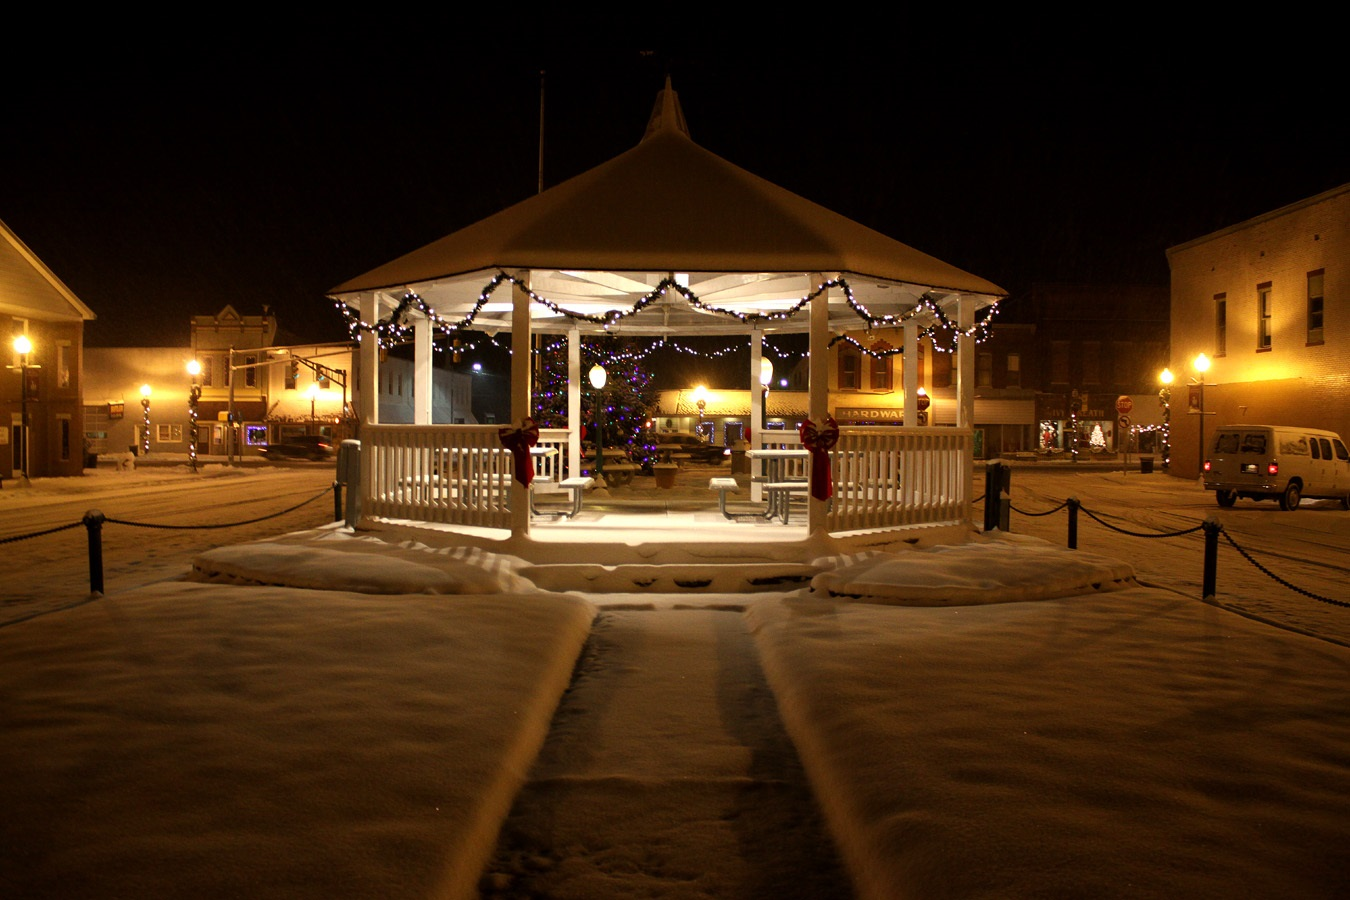 The public square on winter's night.